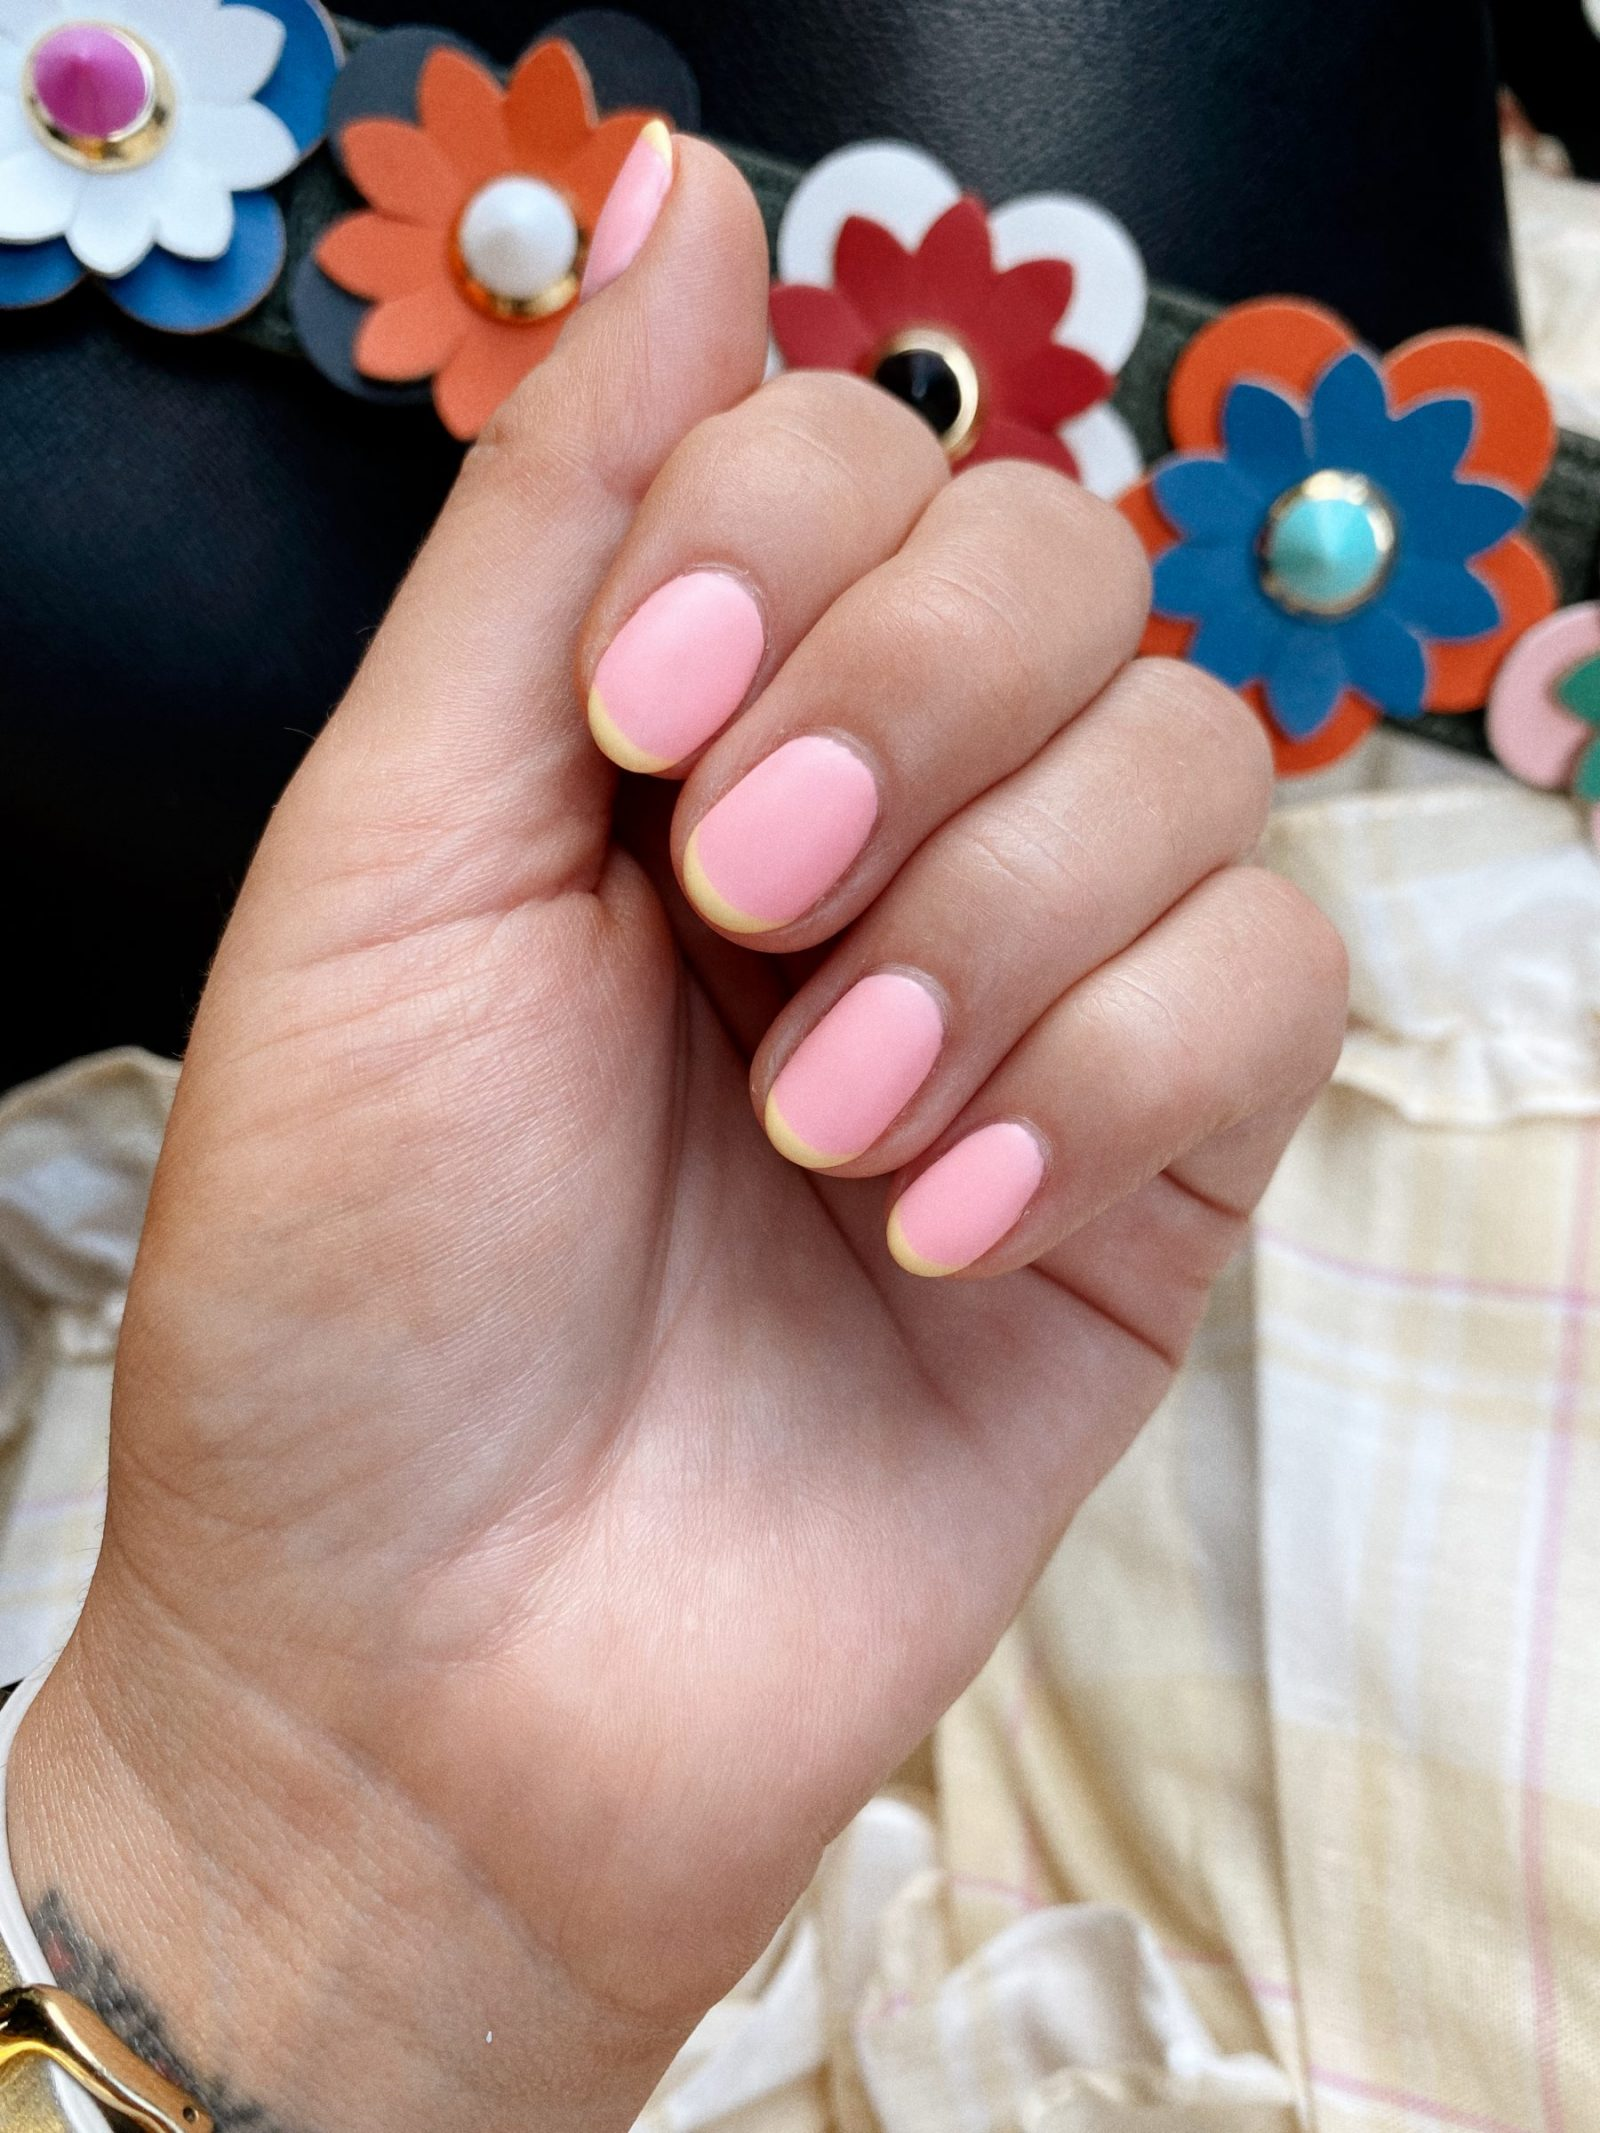 Looking for Summer Nail design ideas? Here you'll find 10 fun and colorful nail ideas to try this summer!